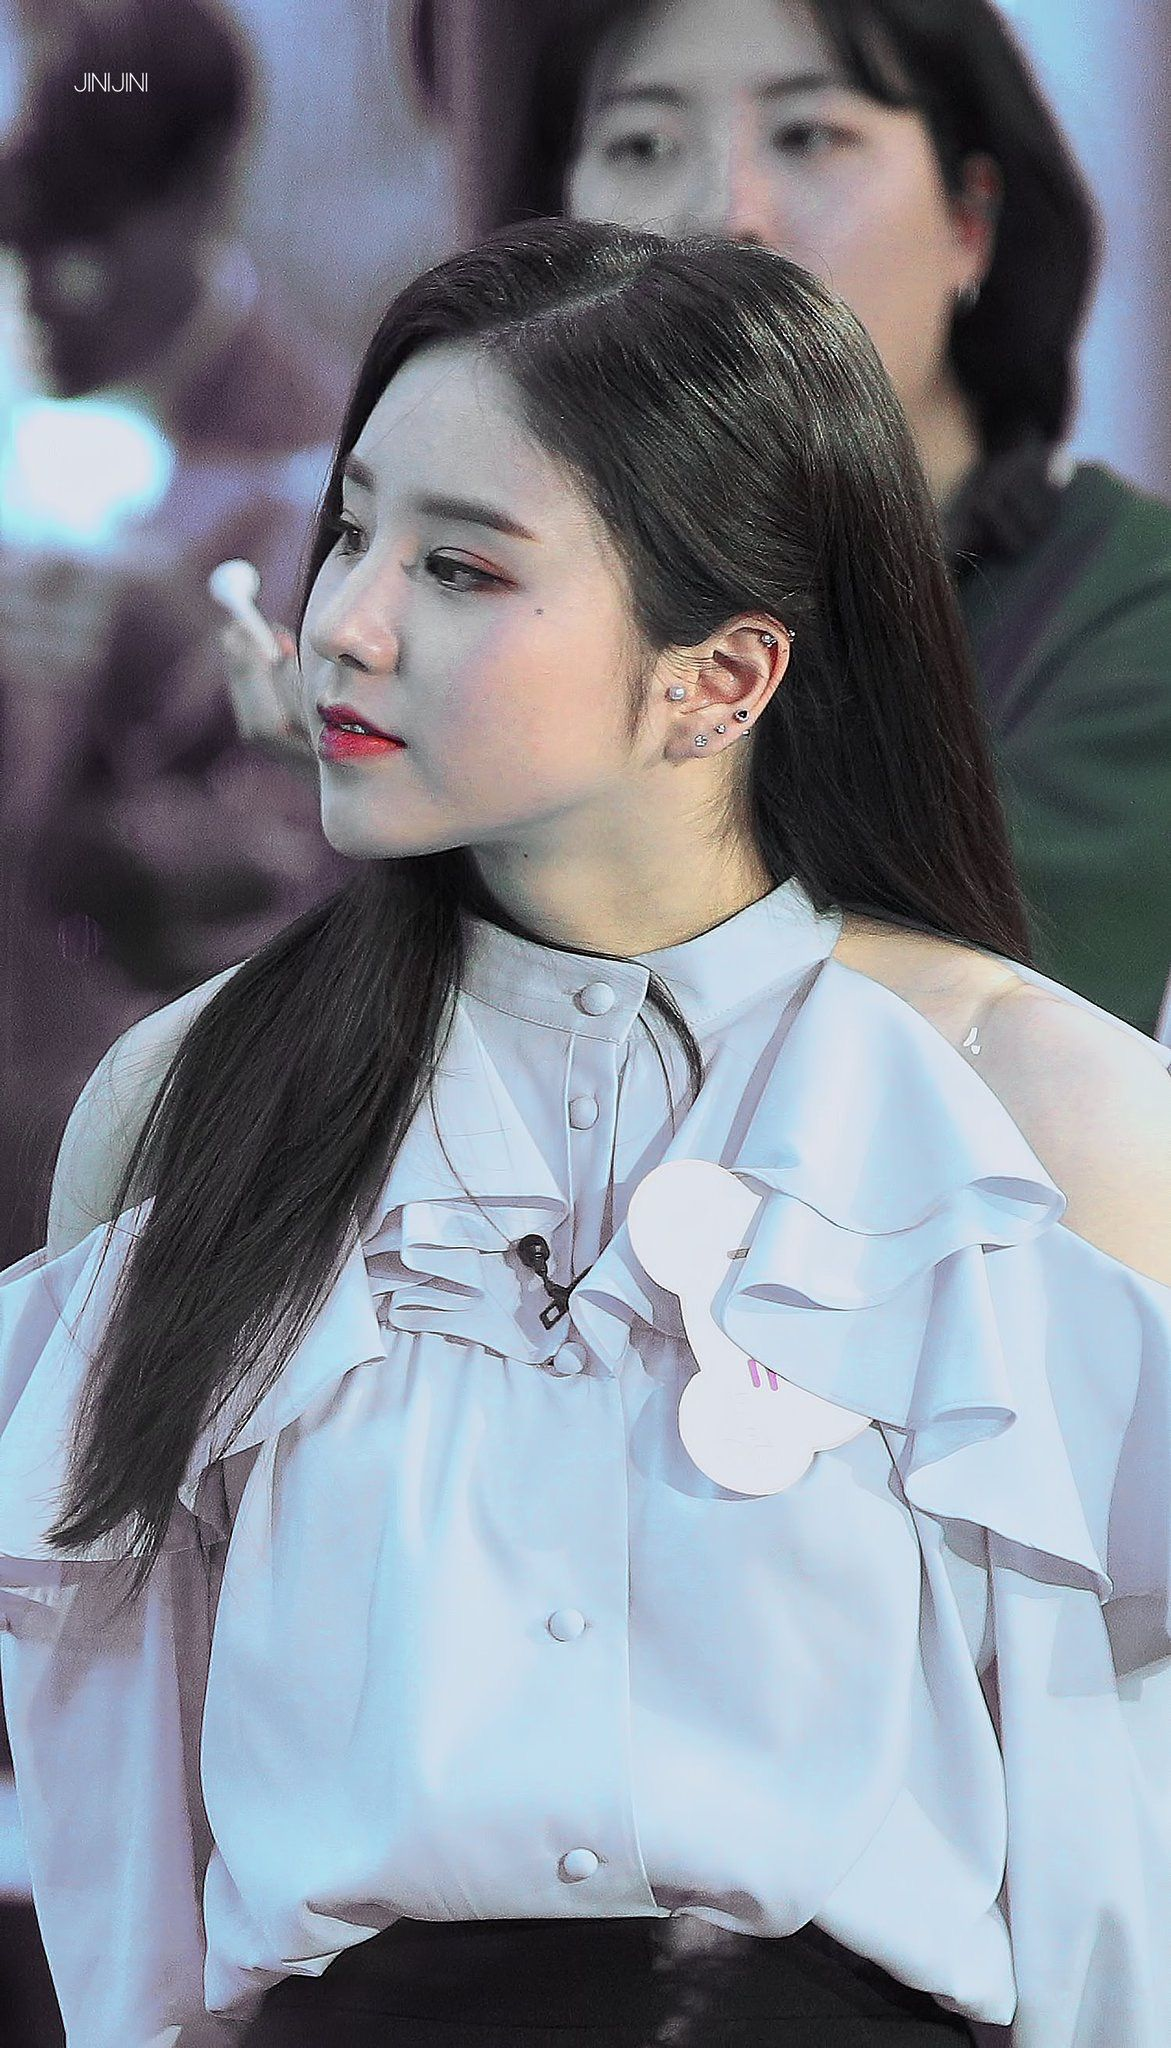 Heejin Loona Piercings Butterfly Ear Piercings Piercings Piercing